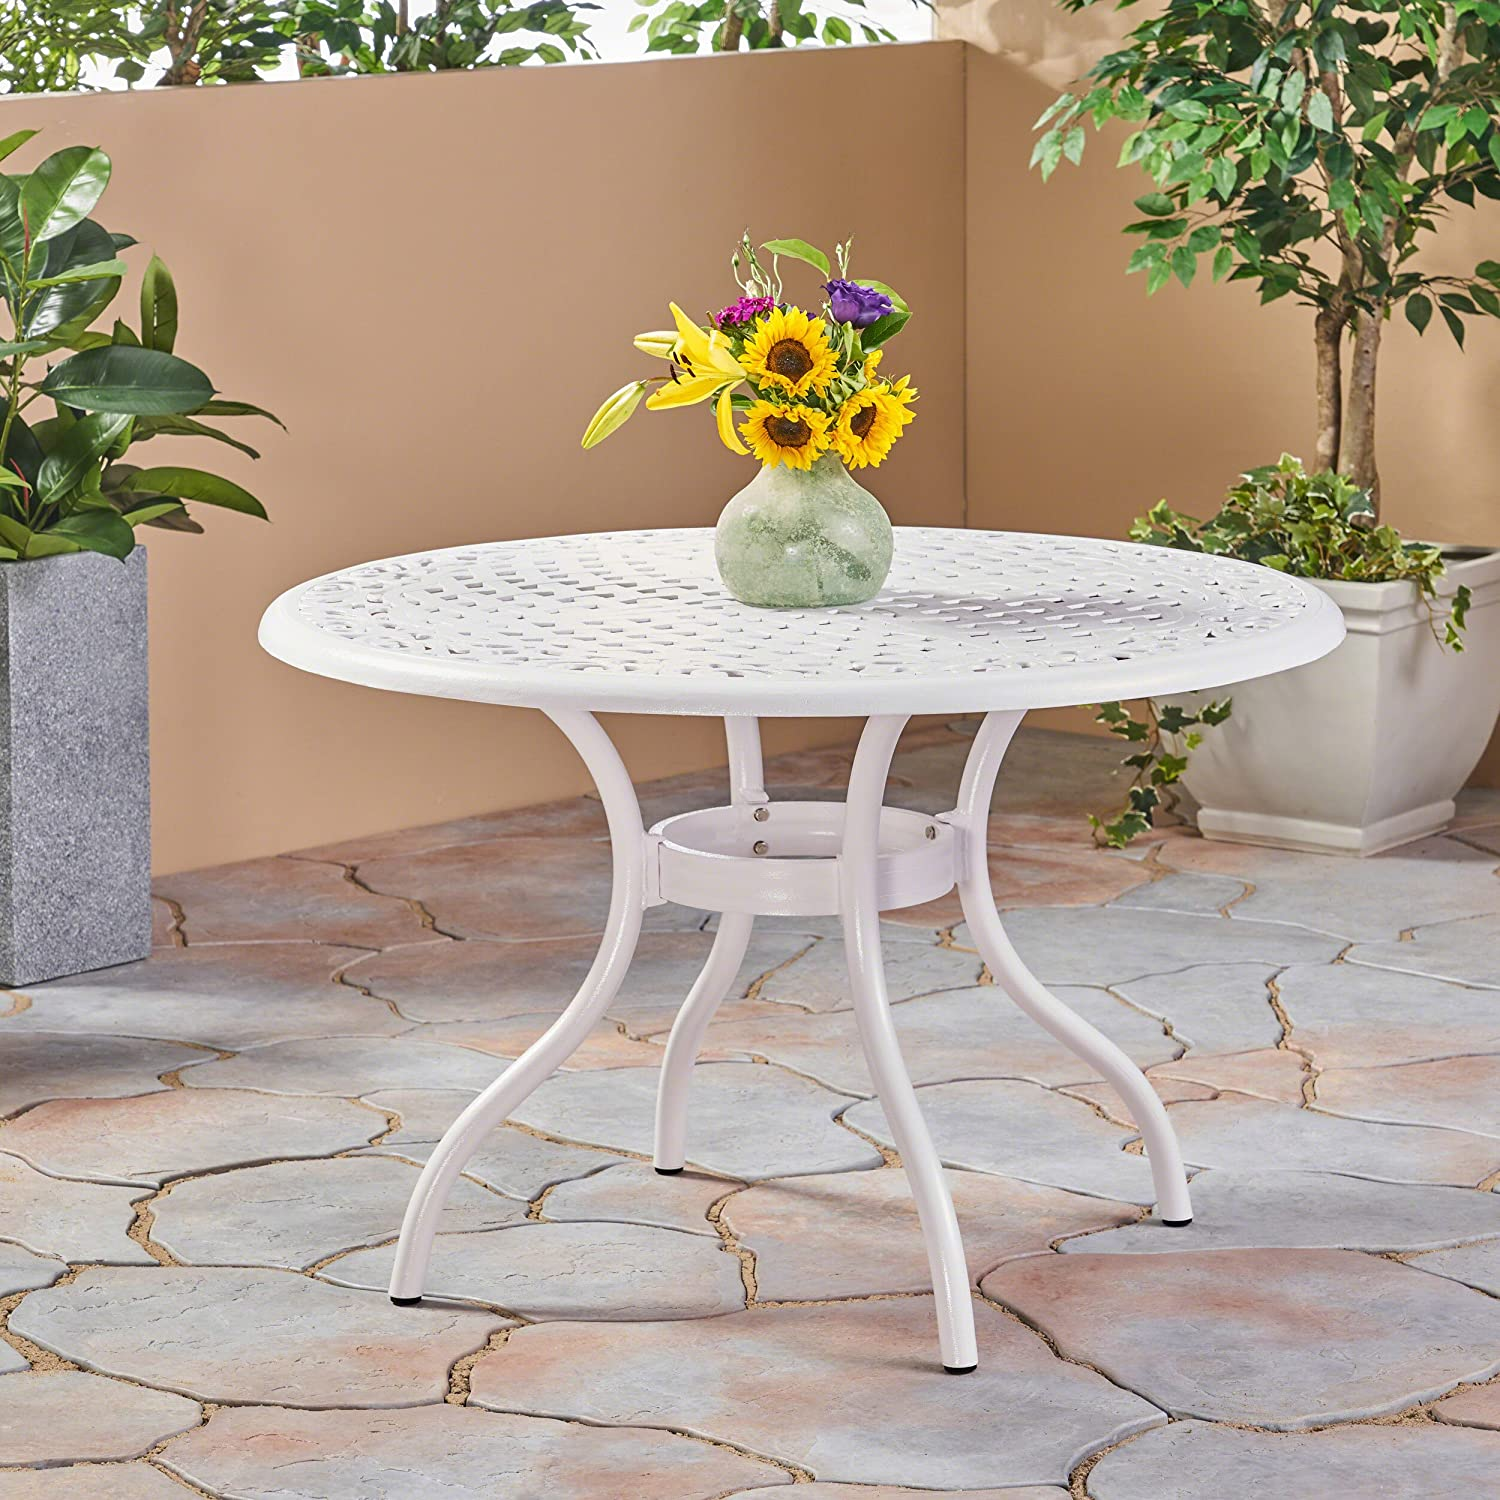 Christopher Knight Home 305134 Simon Outdoor Aluminum Round Dining Table, White